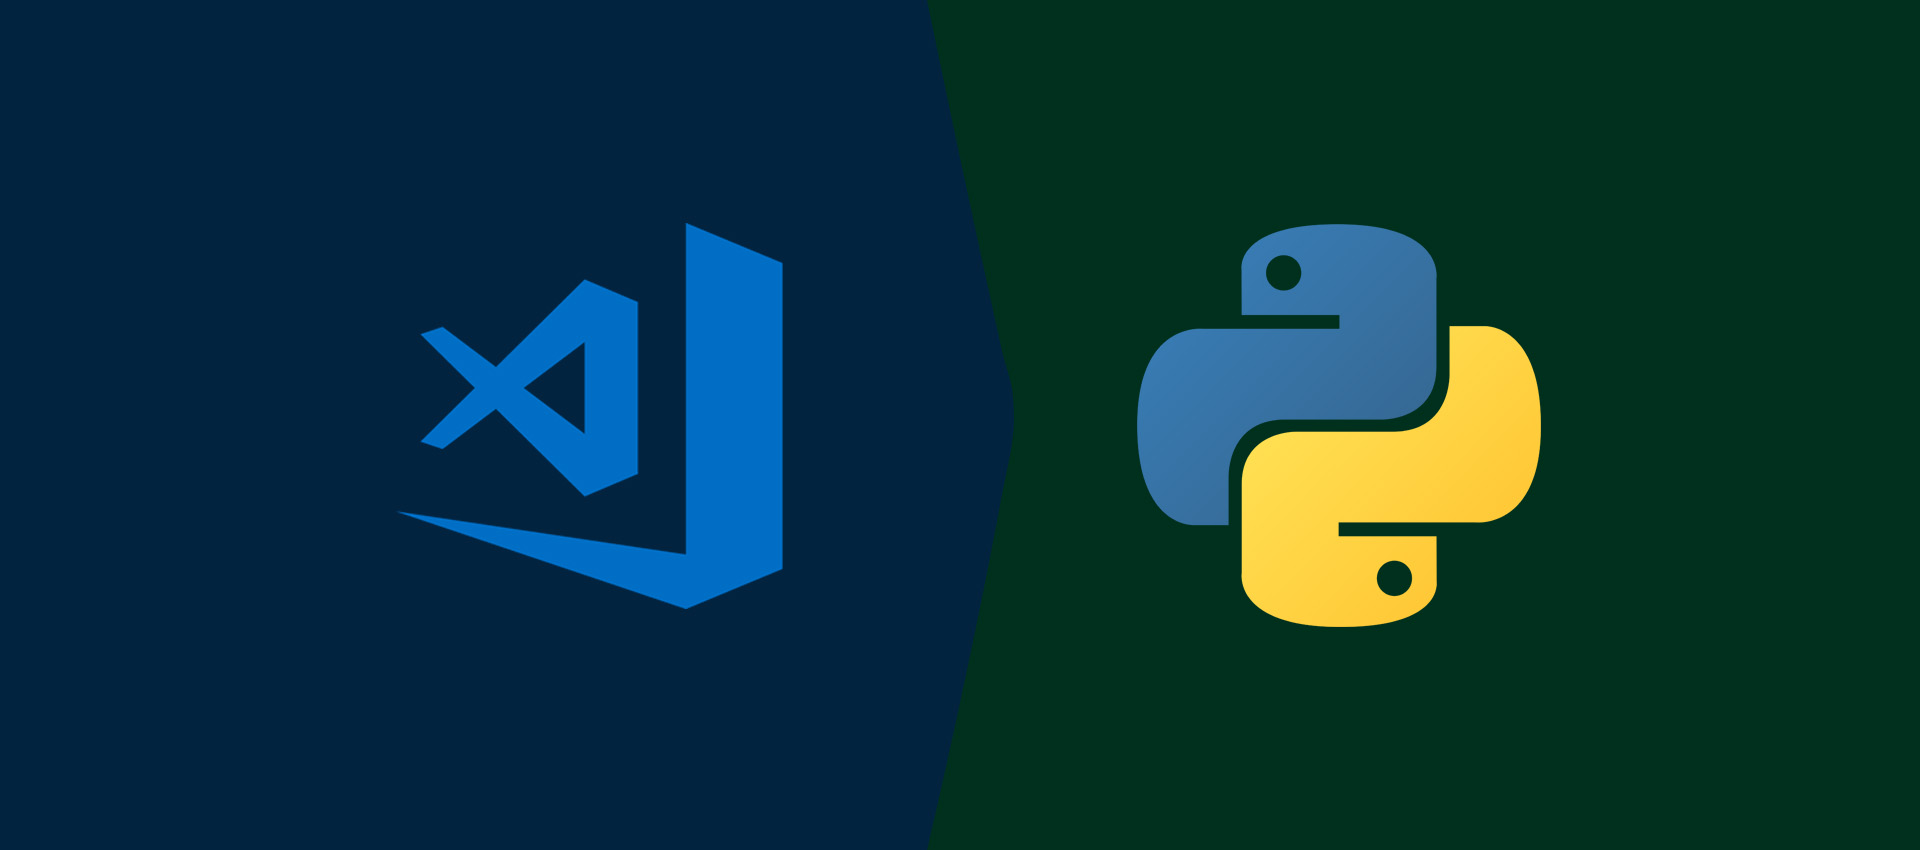 How To Install VSCode For Python On Windows